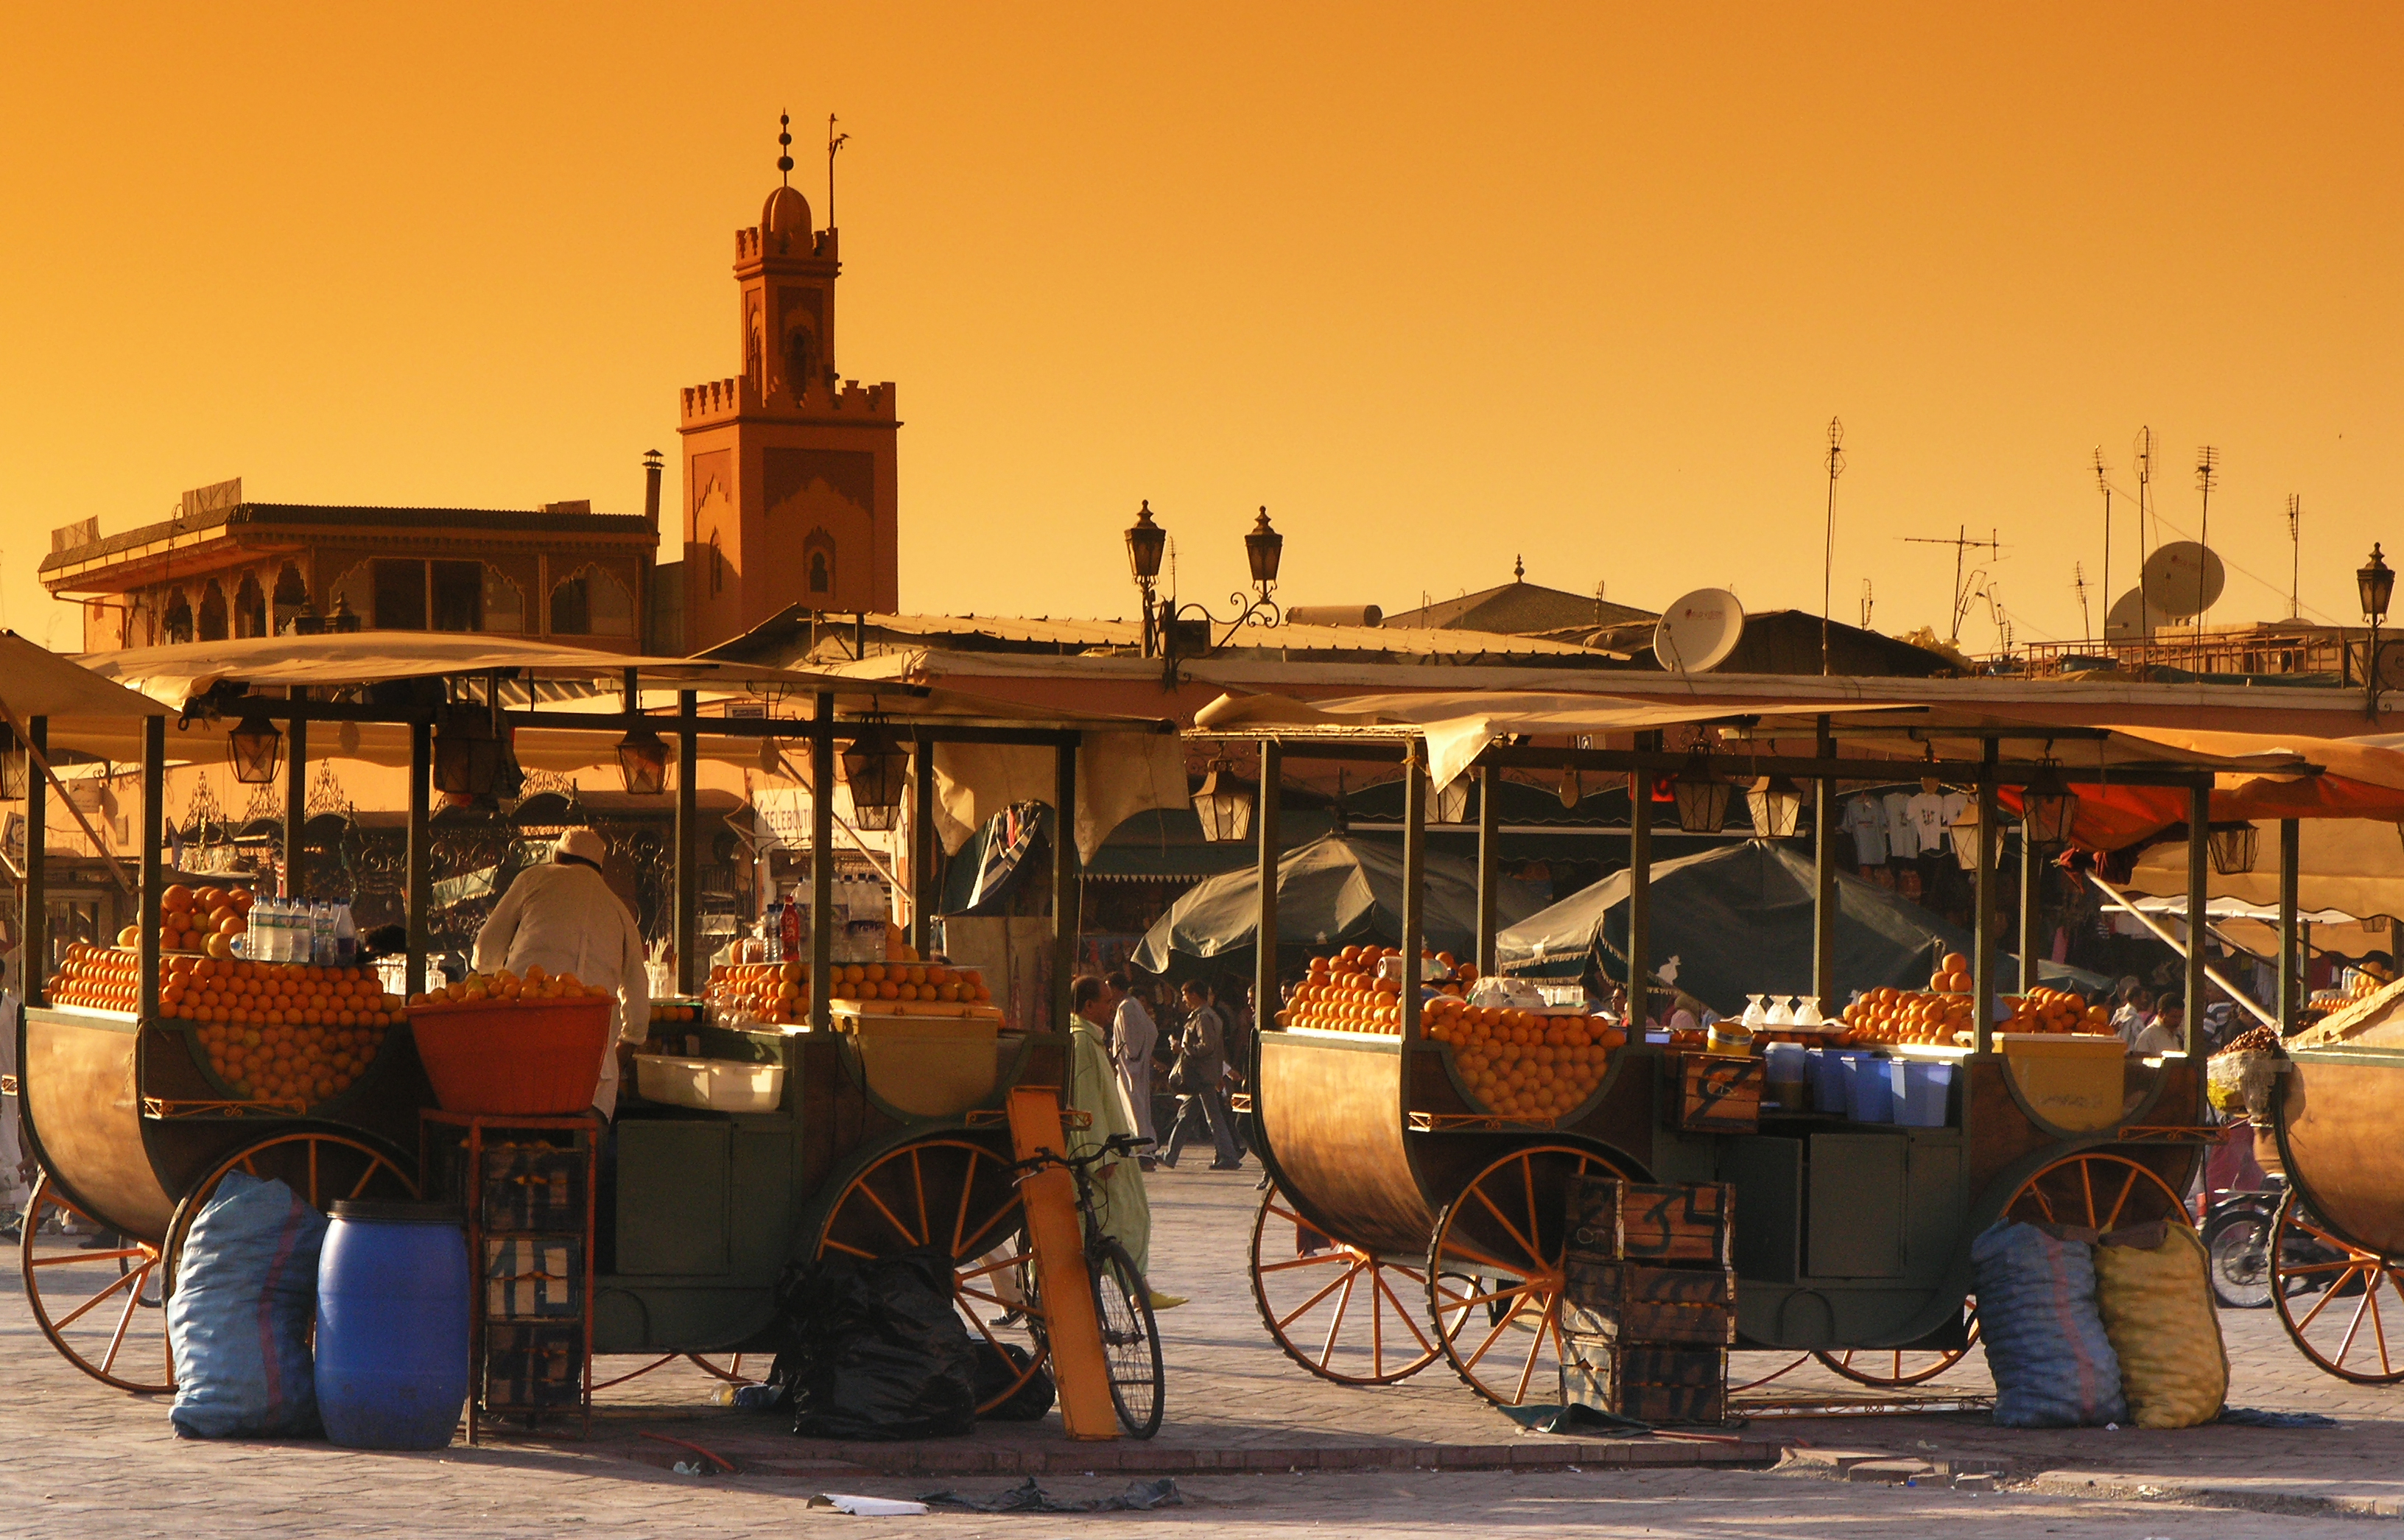 Stalls on wheels laden with stacks of oranges line up ready to sell in Marrakech Djemaa El Fna